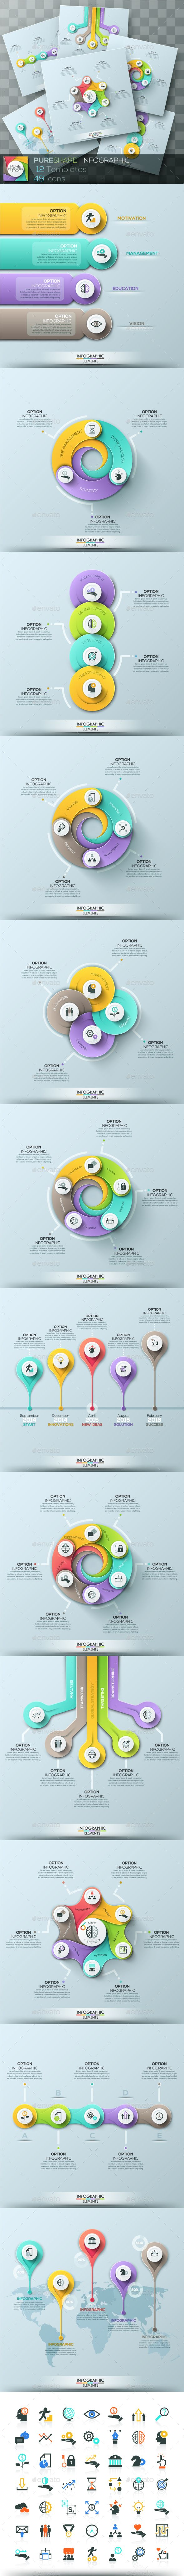 Pure Shape Infographic Templates PSD, Vector EPS, AI. Set 4. Download here: http://graphicriver.net/item/pure-shape-infographic-set-4/15908625?ref=ksioks